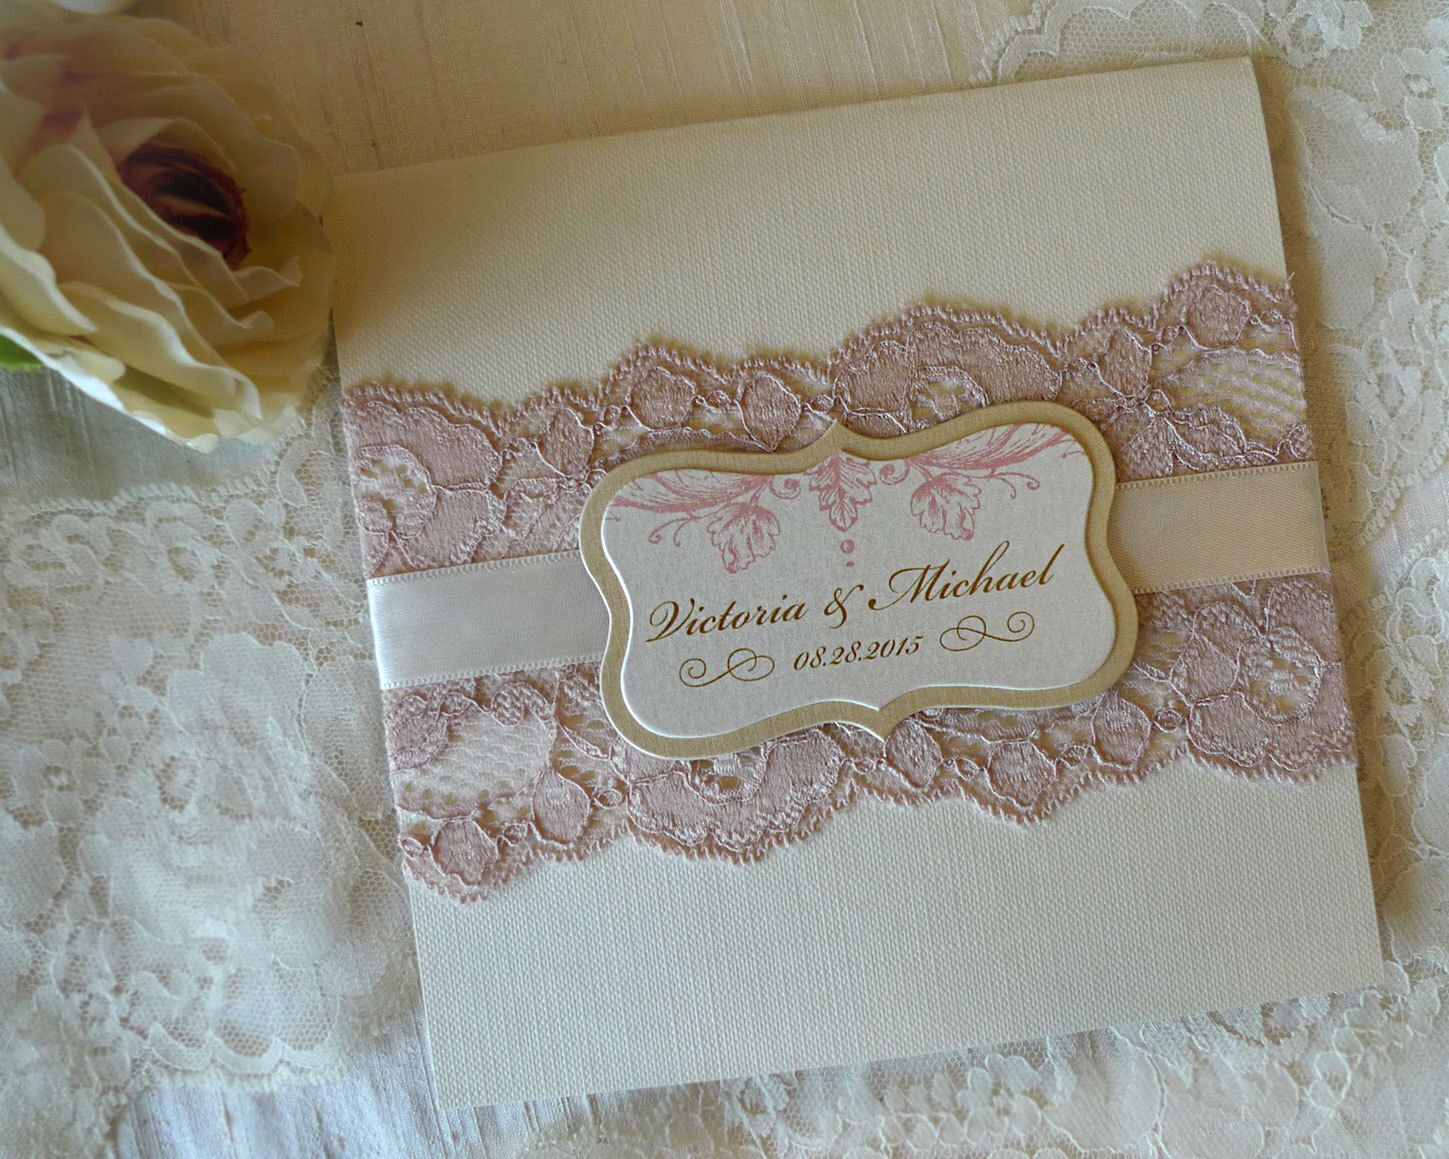 Wedding Invitations Handmade: Pin By Diana Burness On Wedding Stationary Inspirations In